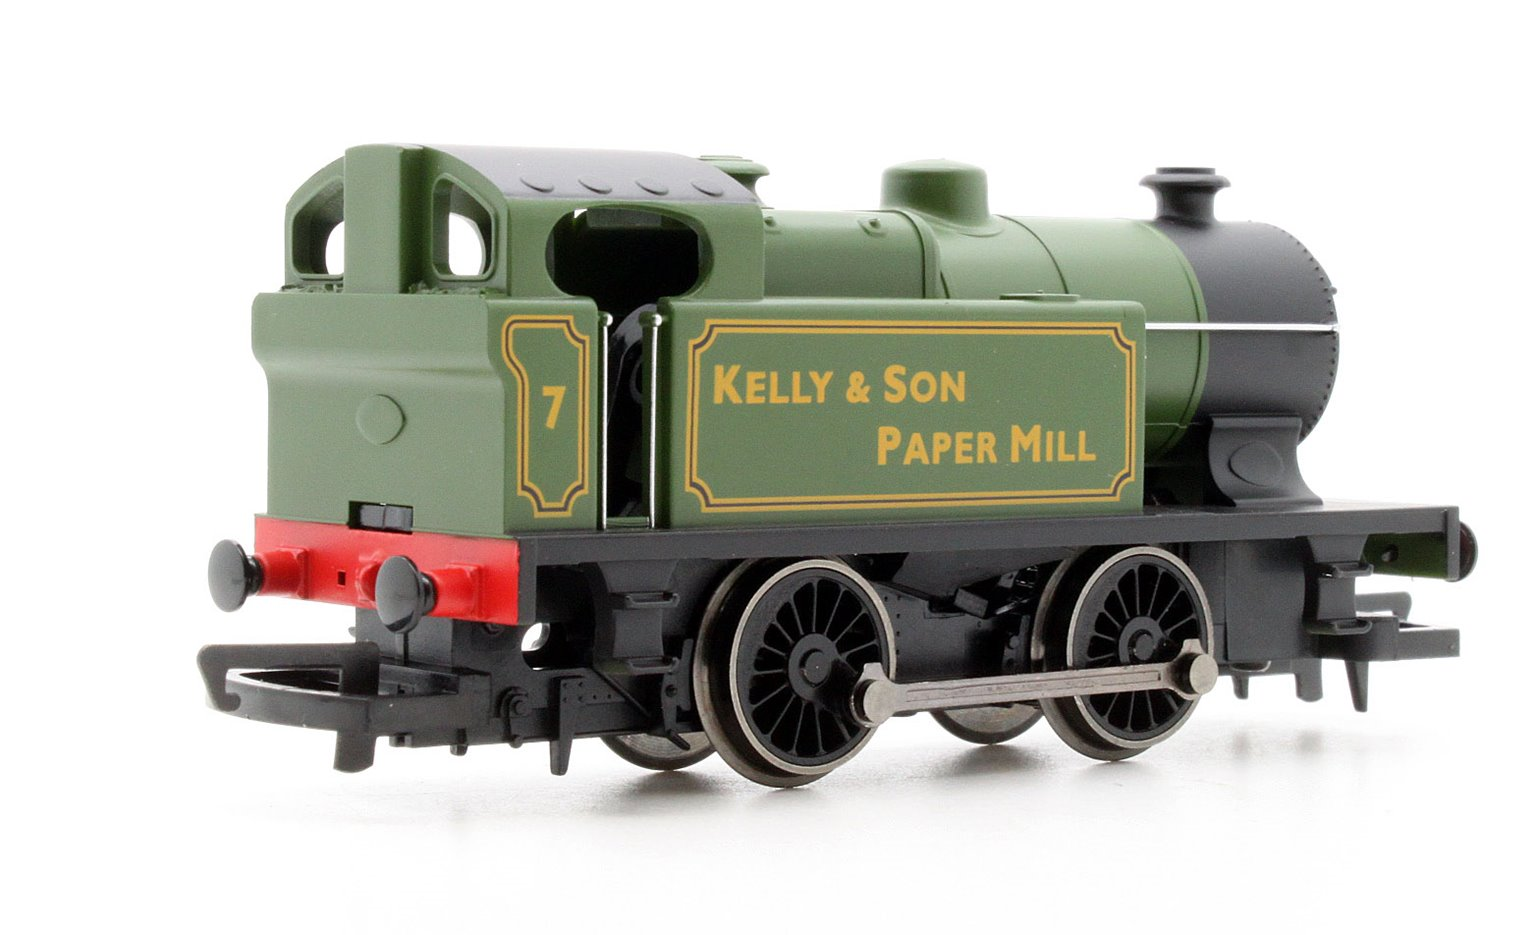 RailRoad 0-4-0 'Kelly & Son Paper Mill' Locomotive